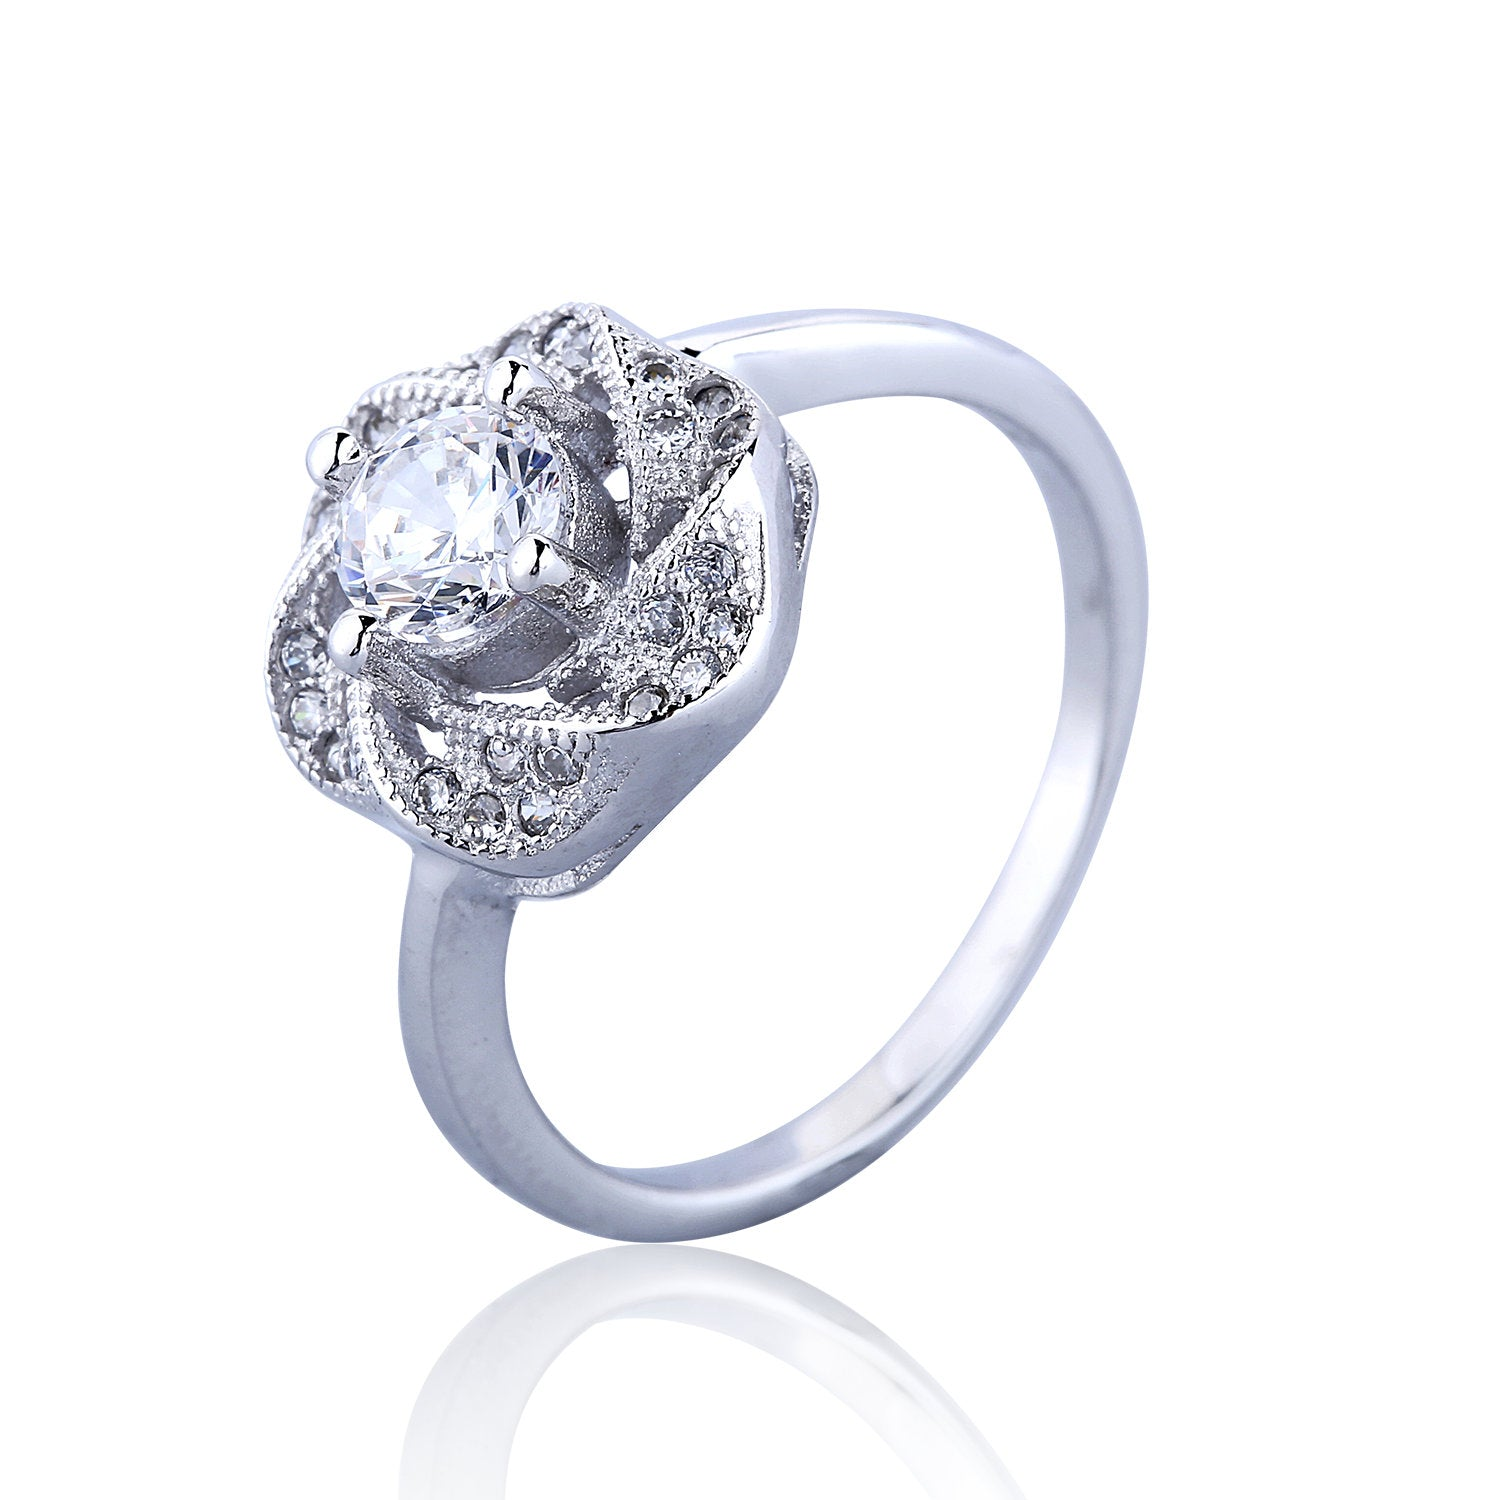 ROSE CLEAR CZ STERLING SILVER RING